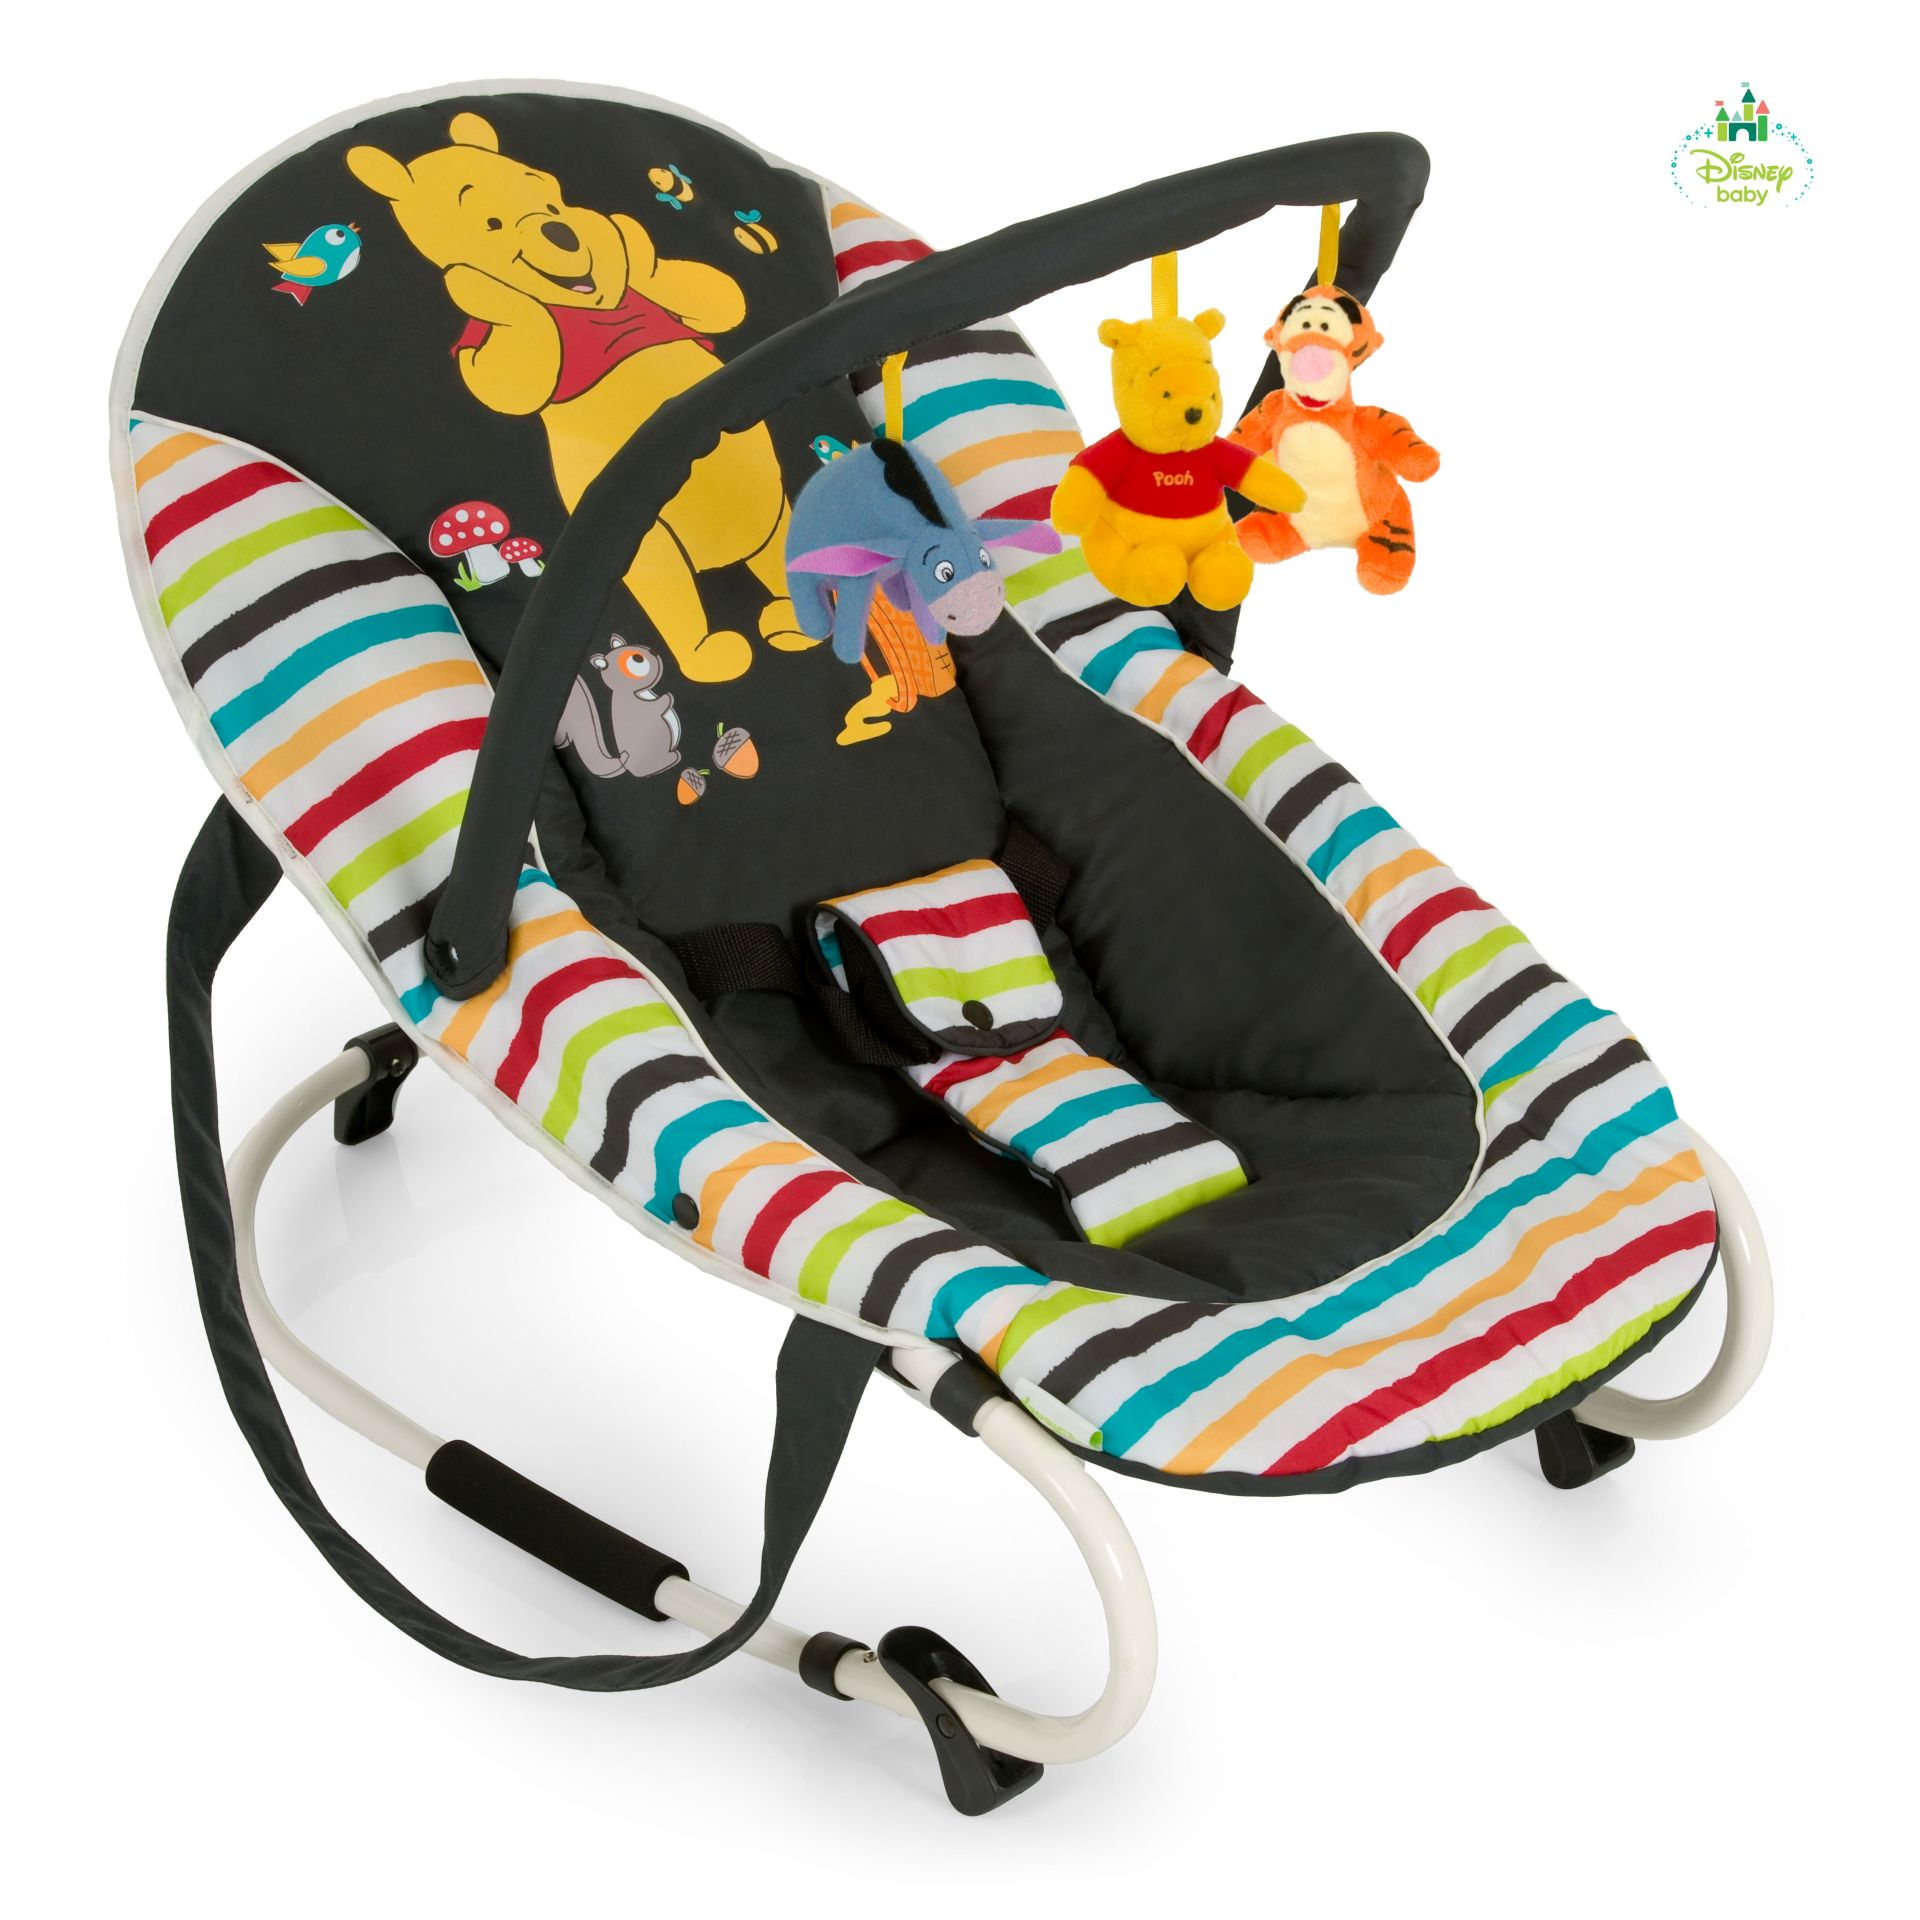 Hauck Baby Bouncer Bungee Deluxe Winnie The Pooh Design Tidy Time 2018